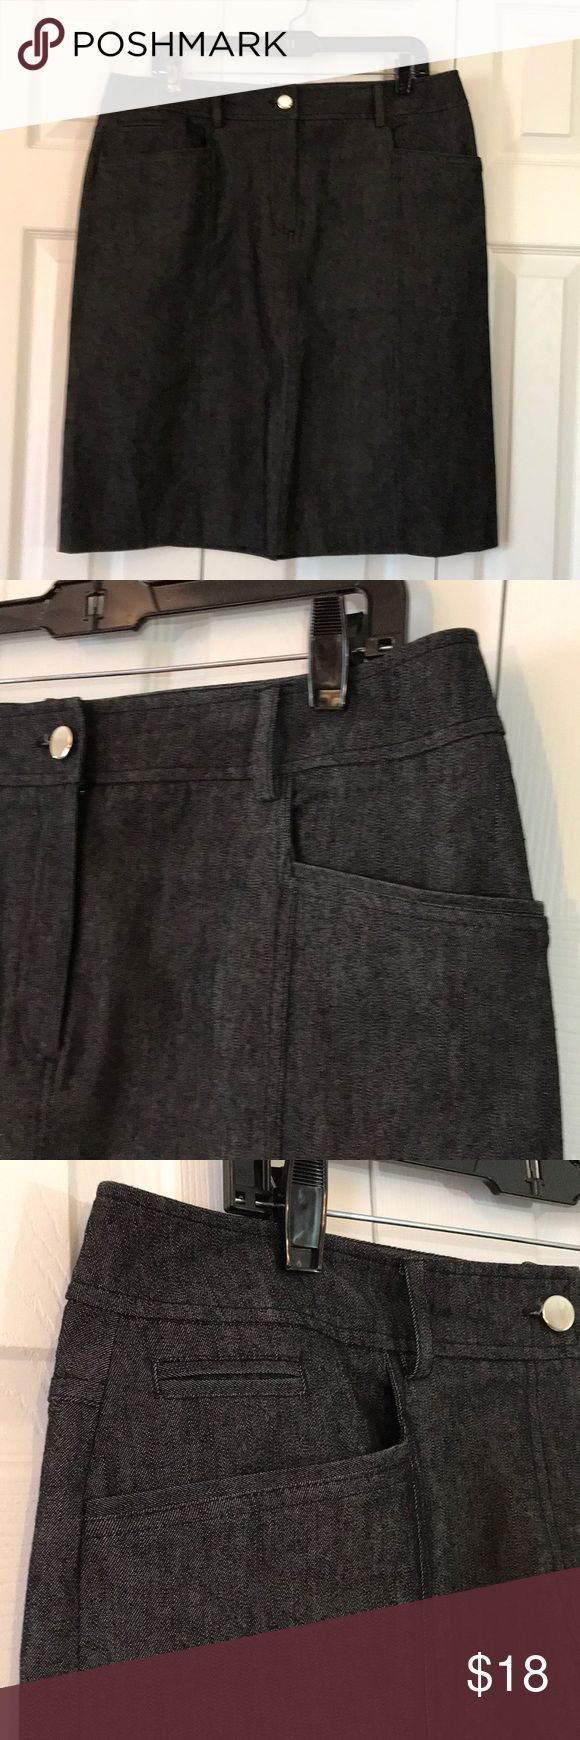 Denim Skirt Women size 14 denim sportswear skirt. One button front with zipper. Two front and two back pockets with back kick split. 77% cotton, 20% polyester and 3% elastane. Wear with boots, booties, heels and sandals. Four season chic! Sandro Skirts